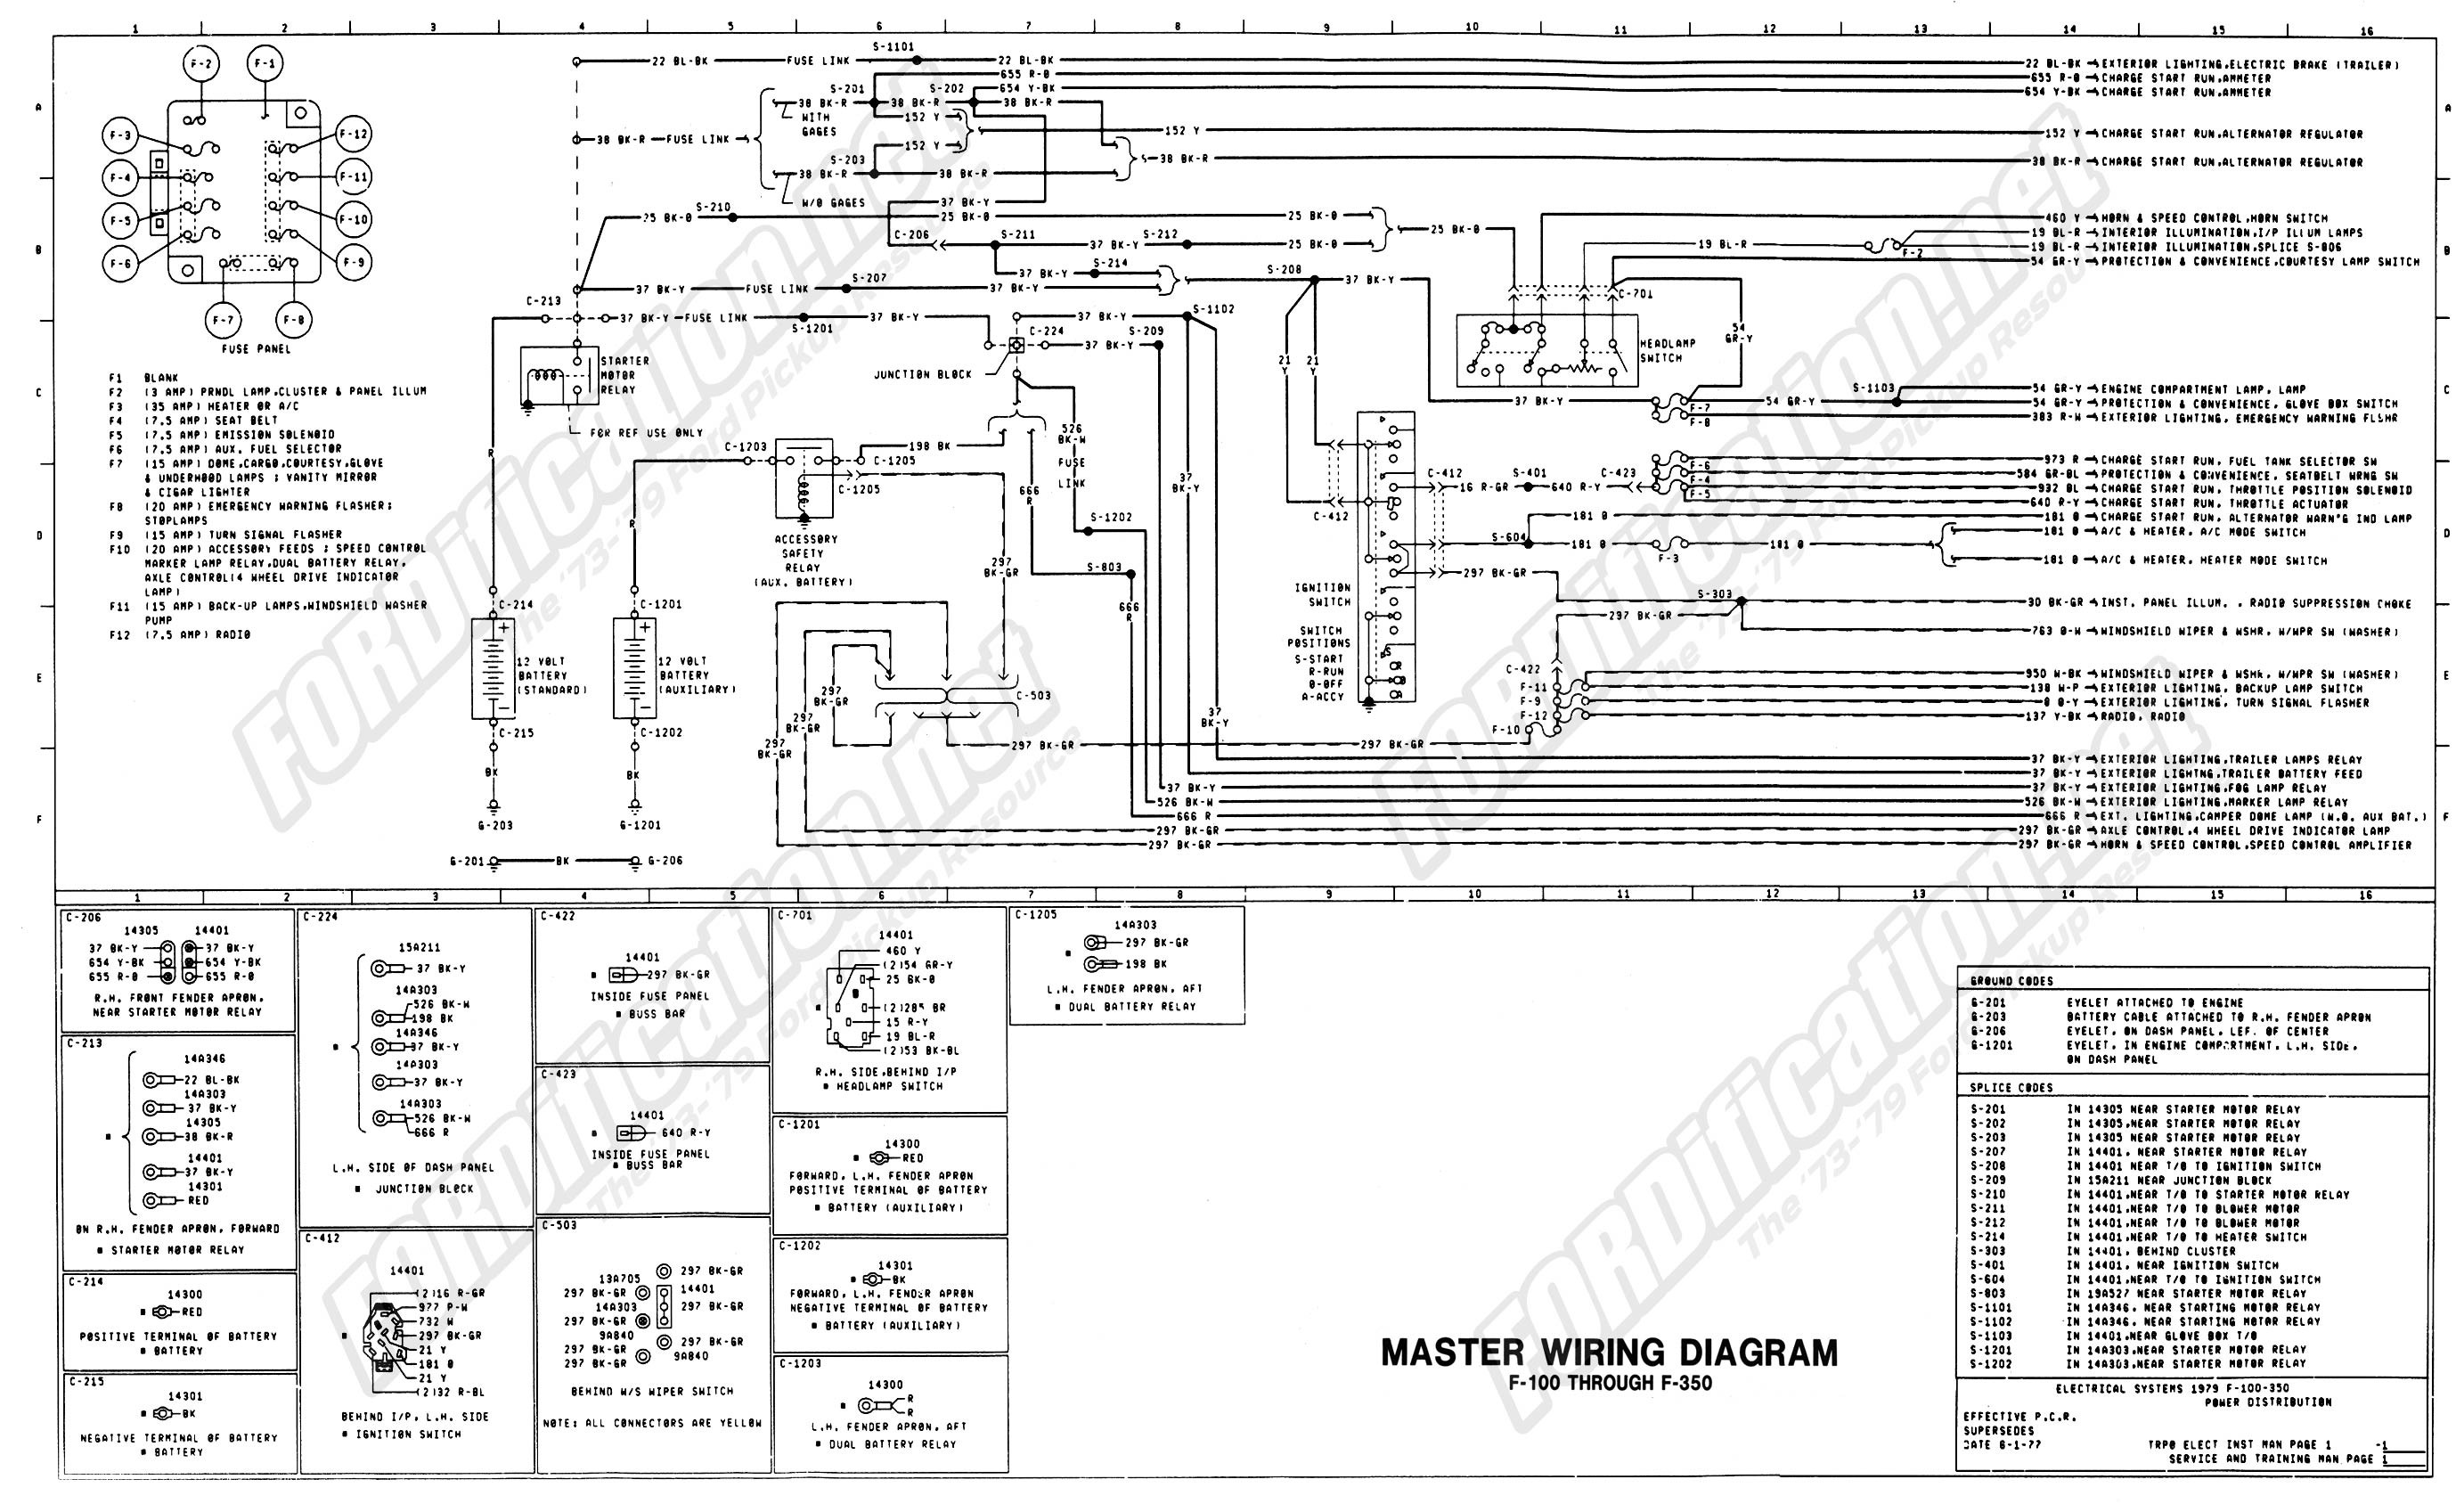 1995 ford F150 Parts Diagram 1997 ford F 150 Cruise Control Wiring Diagram Trusted Wiring Of 1995 ford F150 Parts Diagram